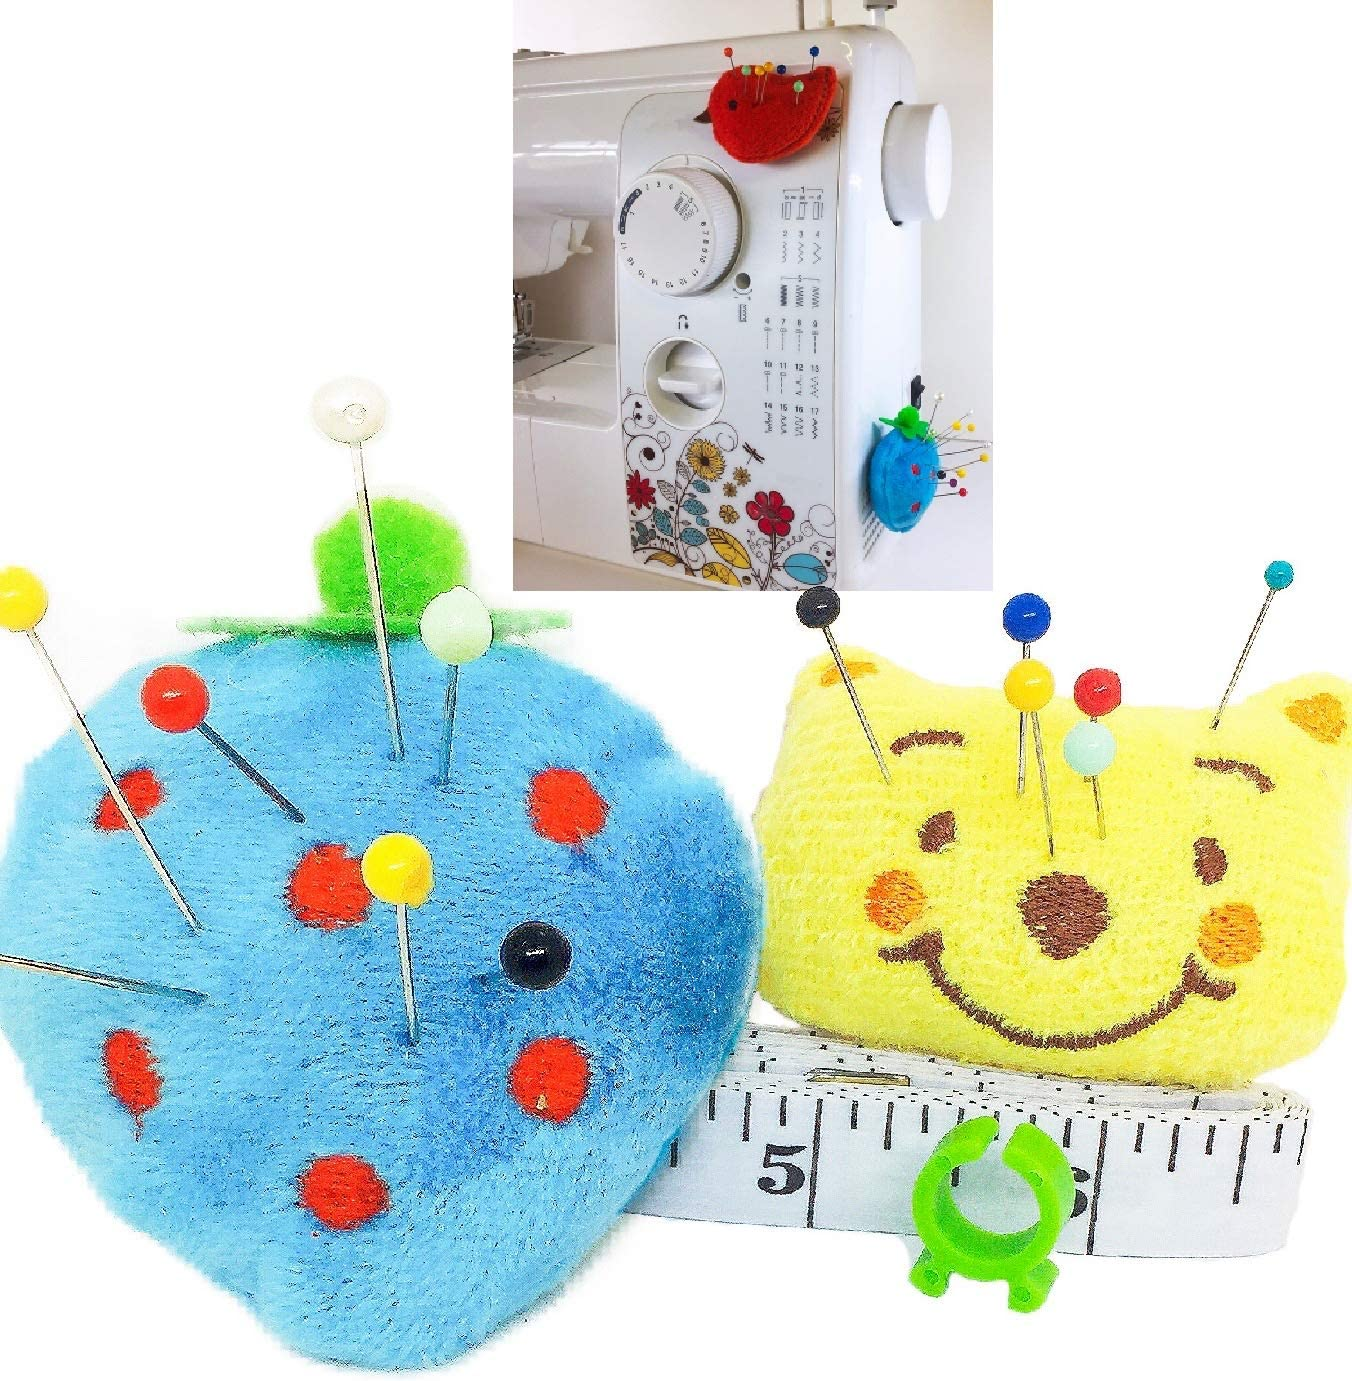 Pincushion for Sewing Machine Pin Holder 2 pcs Needle Storage Organizer DIY Craft S Blue